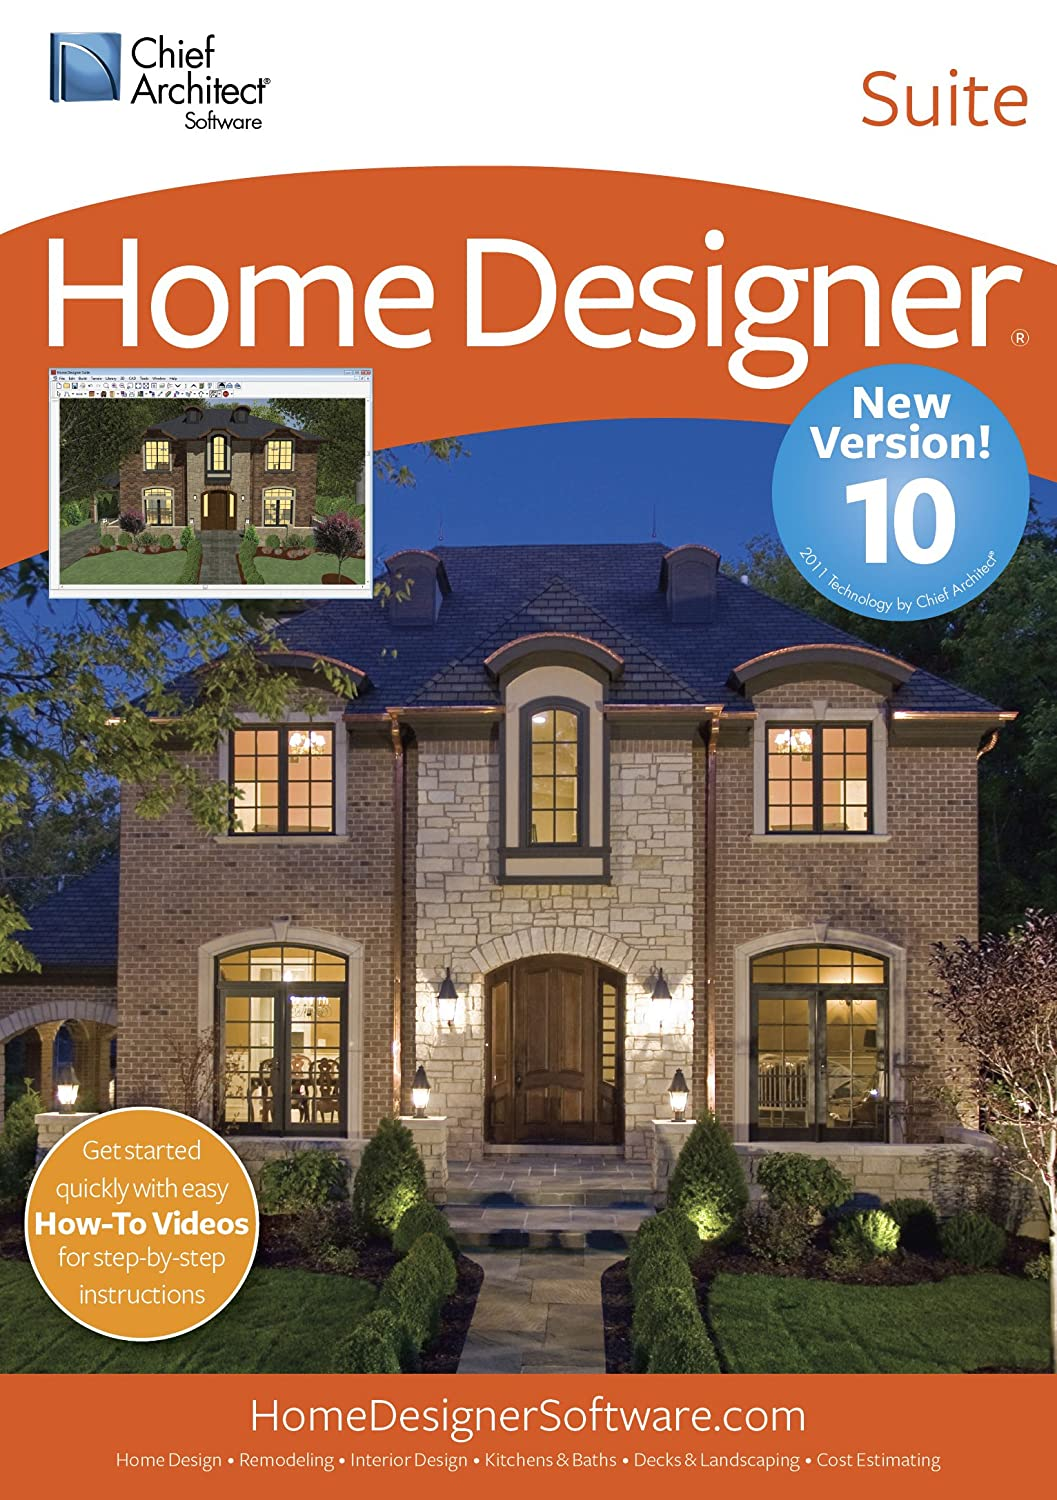 amazon com chief architect home designer suite 10 download software